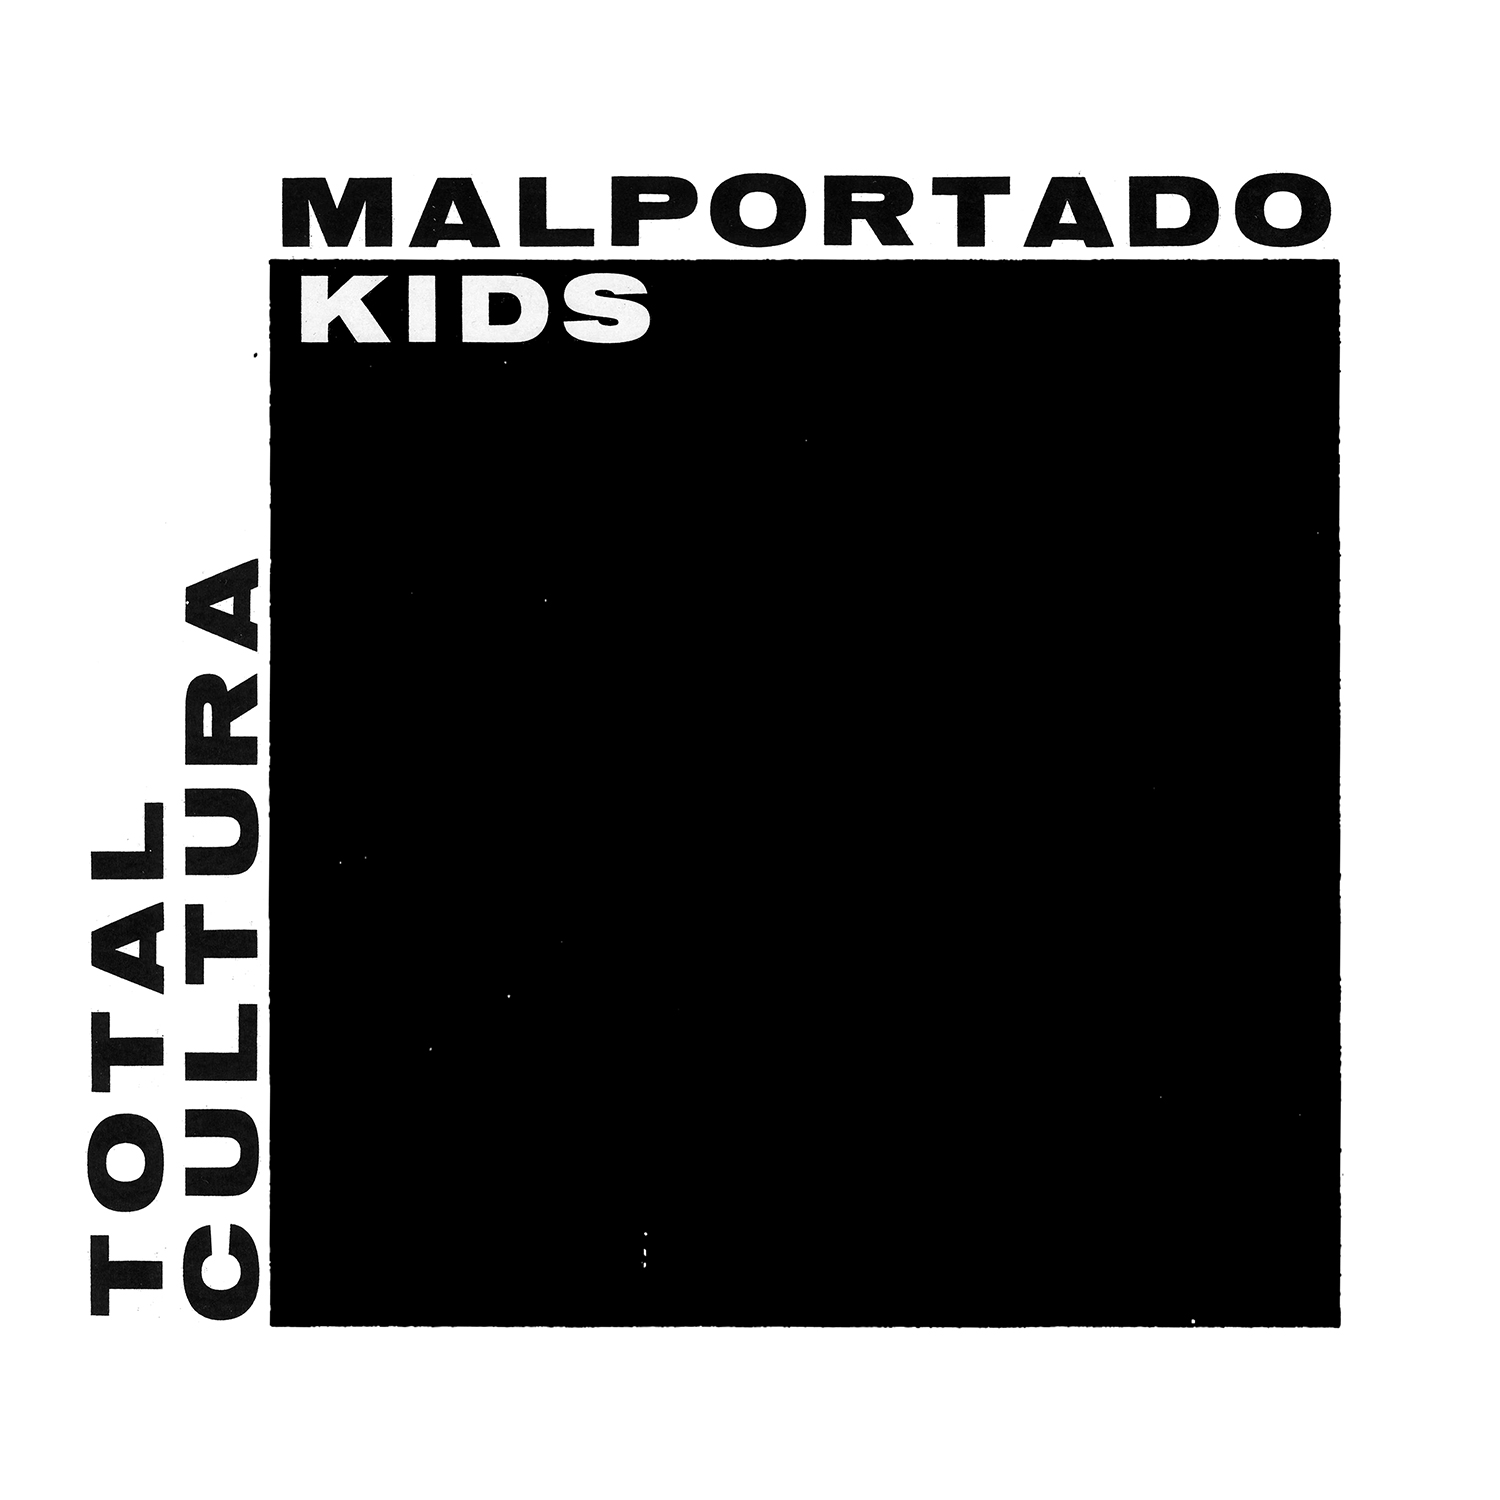 For Anti-Colonialist Dance Floor Anthems, Look No Further Than Malportado Kids' 'Total Cultura' EP